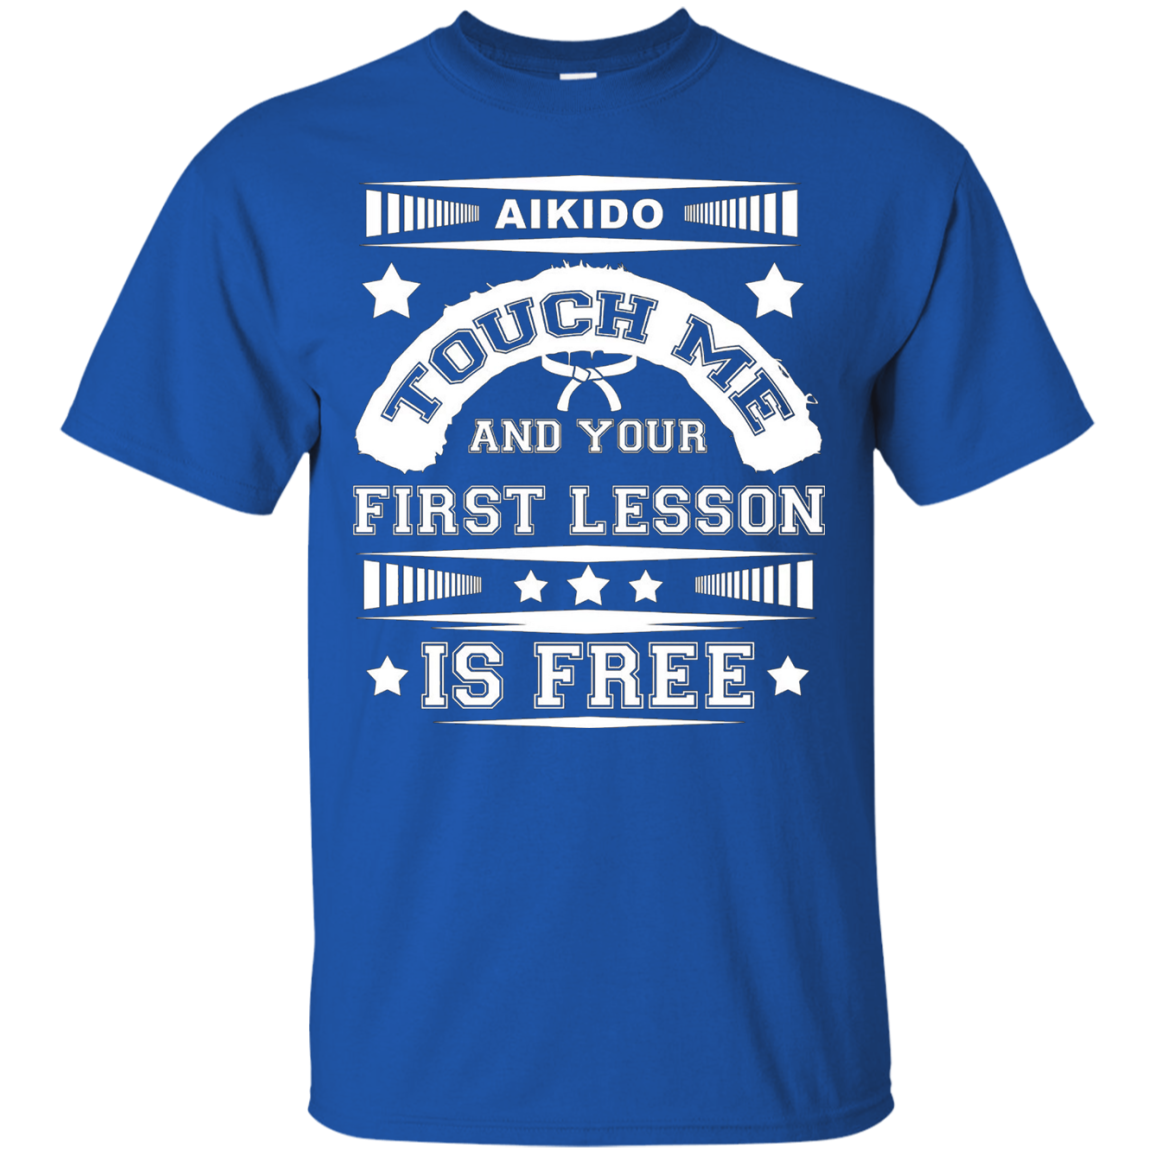 Aikido T Shirt.Your First Lesson Is Free Aikido T Shirt